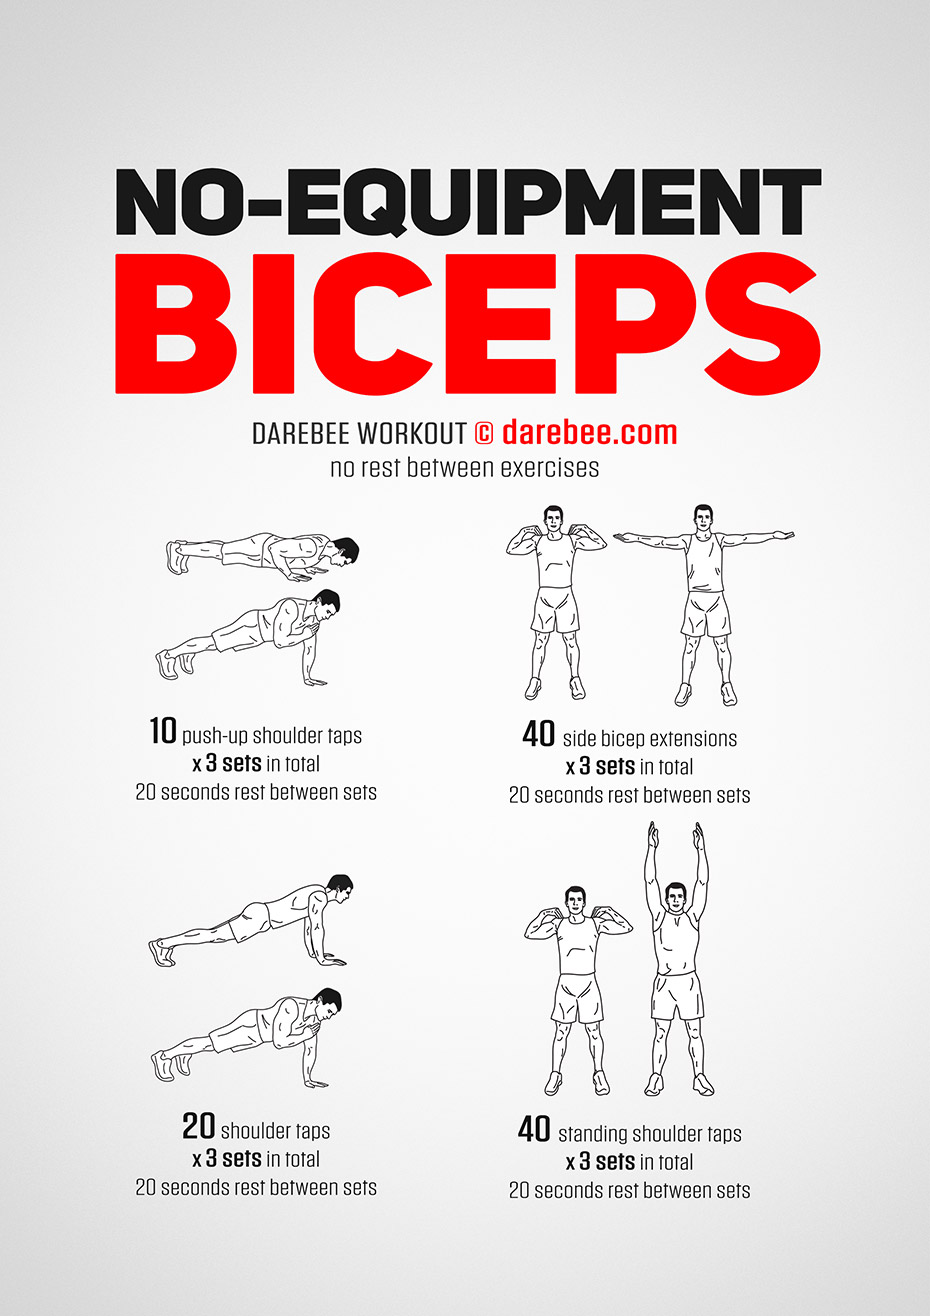 No-Equipment Biceps Workout